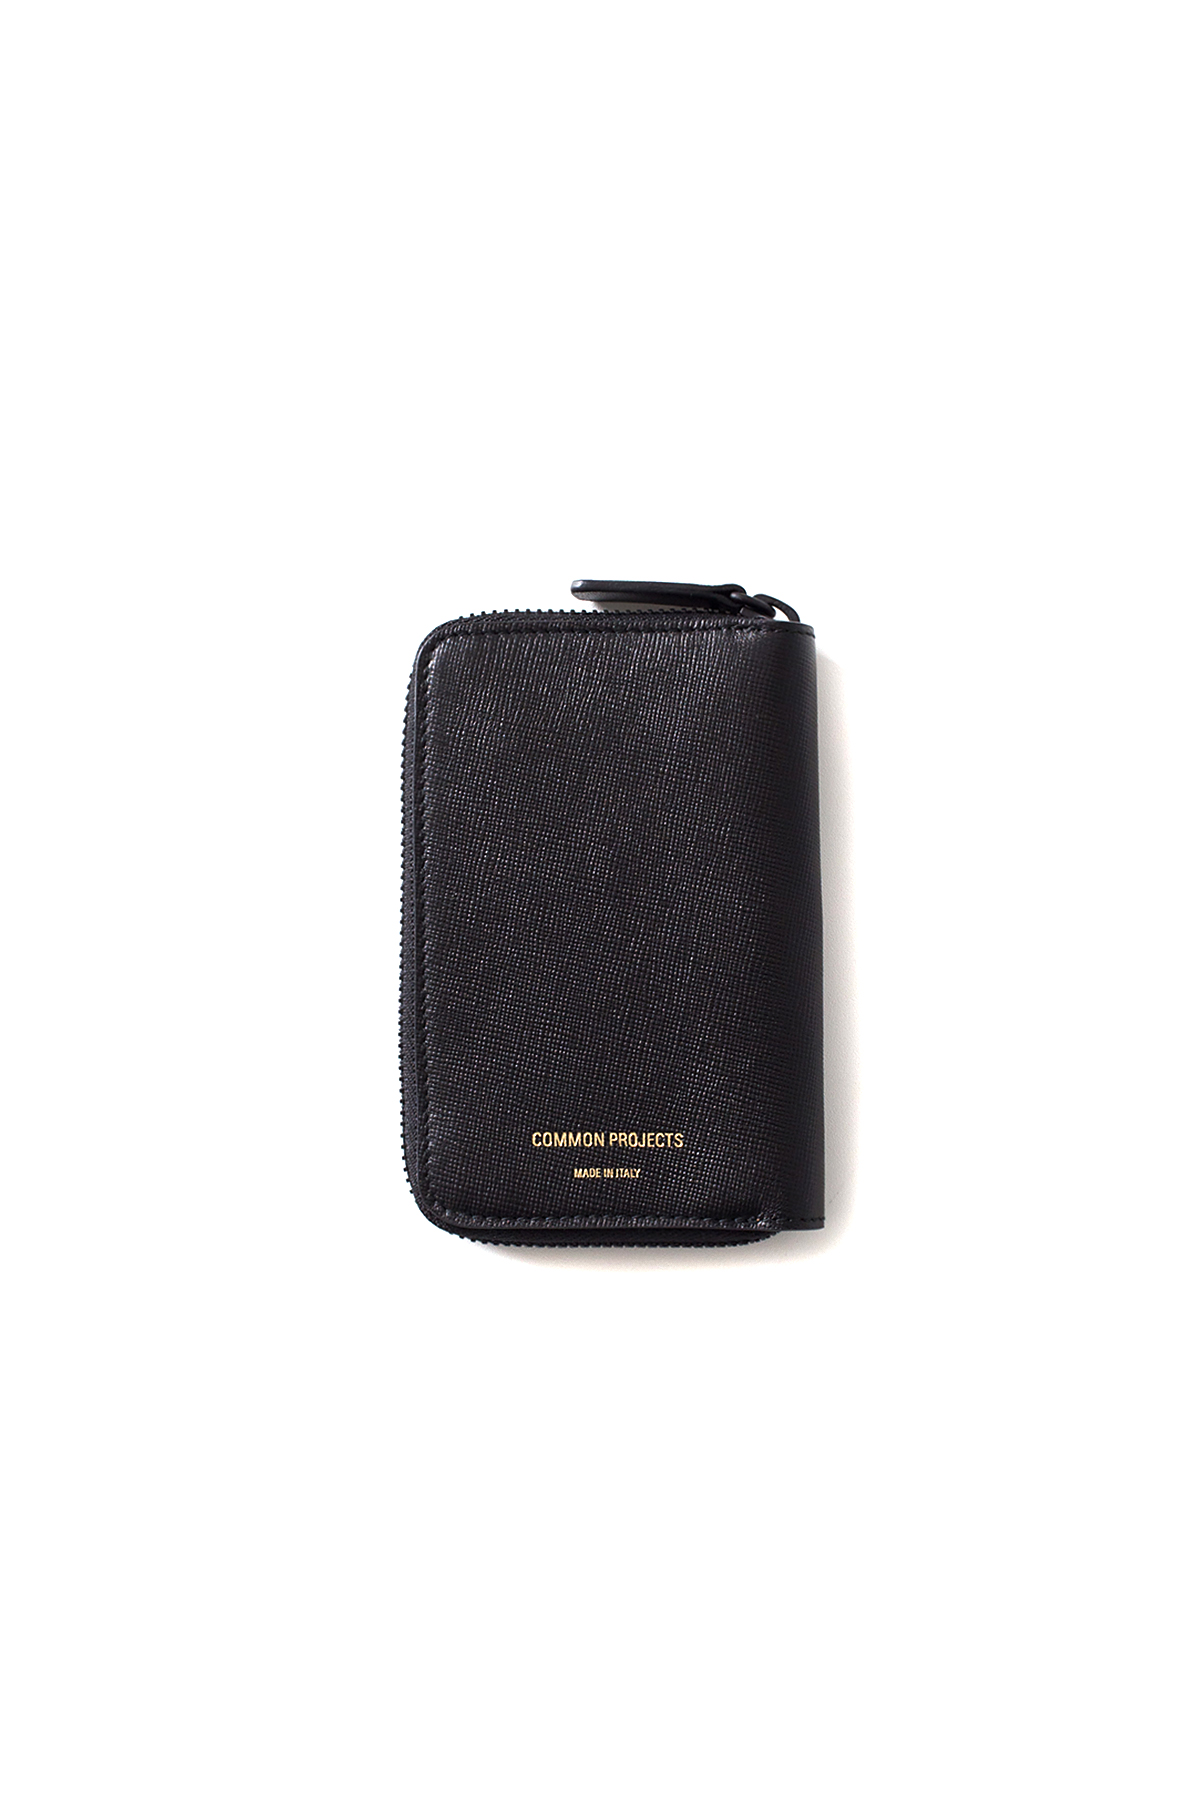 Common Projects : Zip Key Holder 9046 (Black)